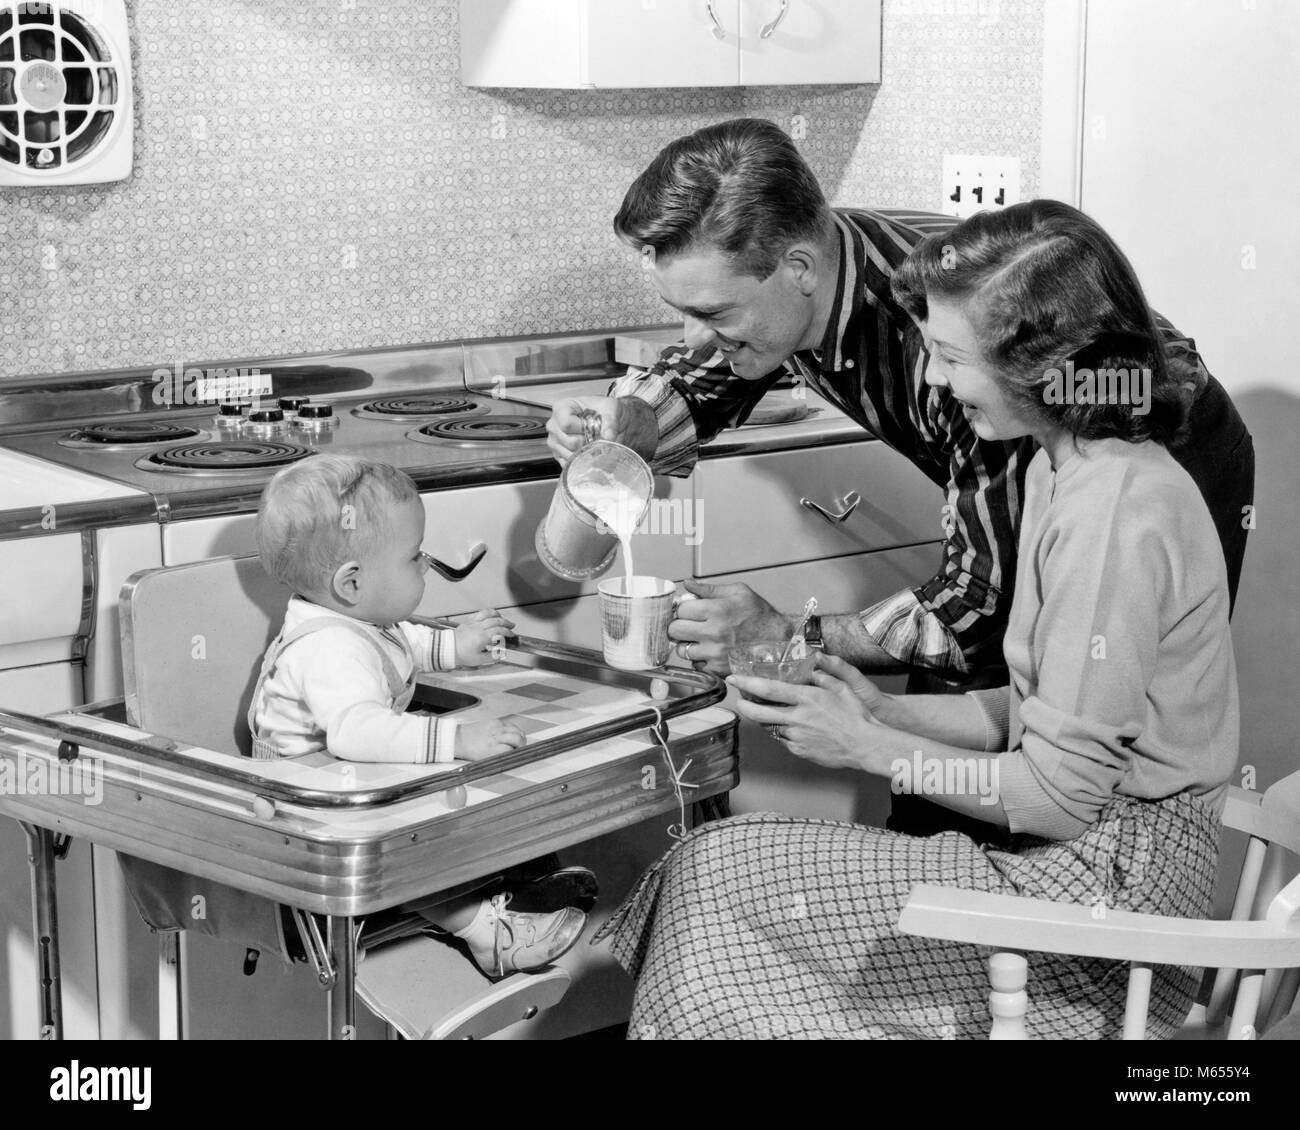 1950s Woman Kitchen Stockfotos & 1950s Woman Kitchen